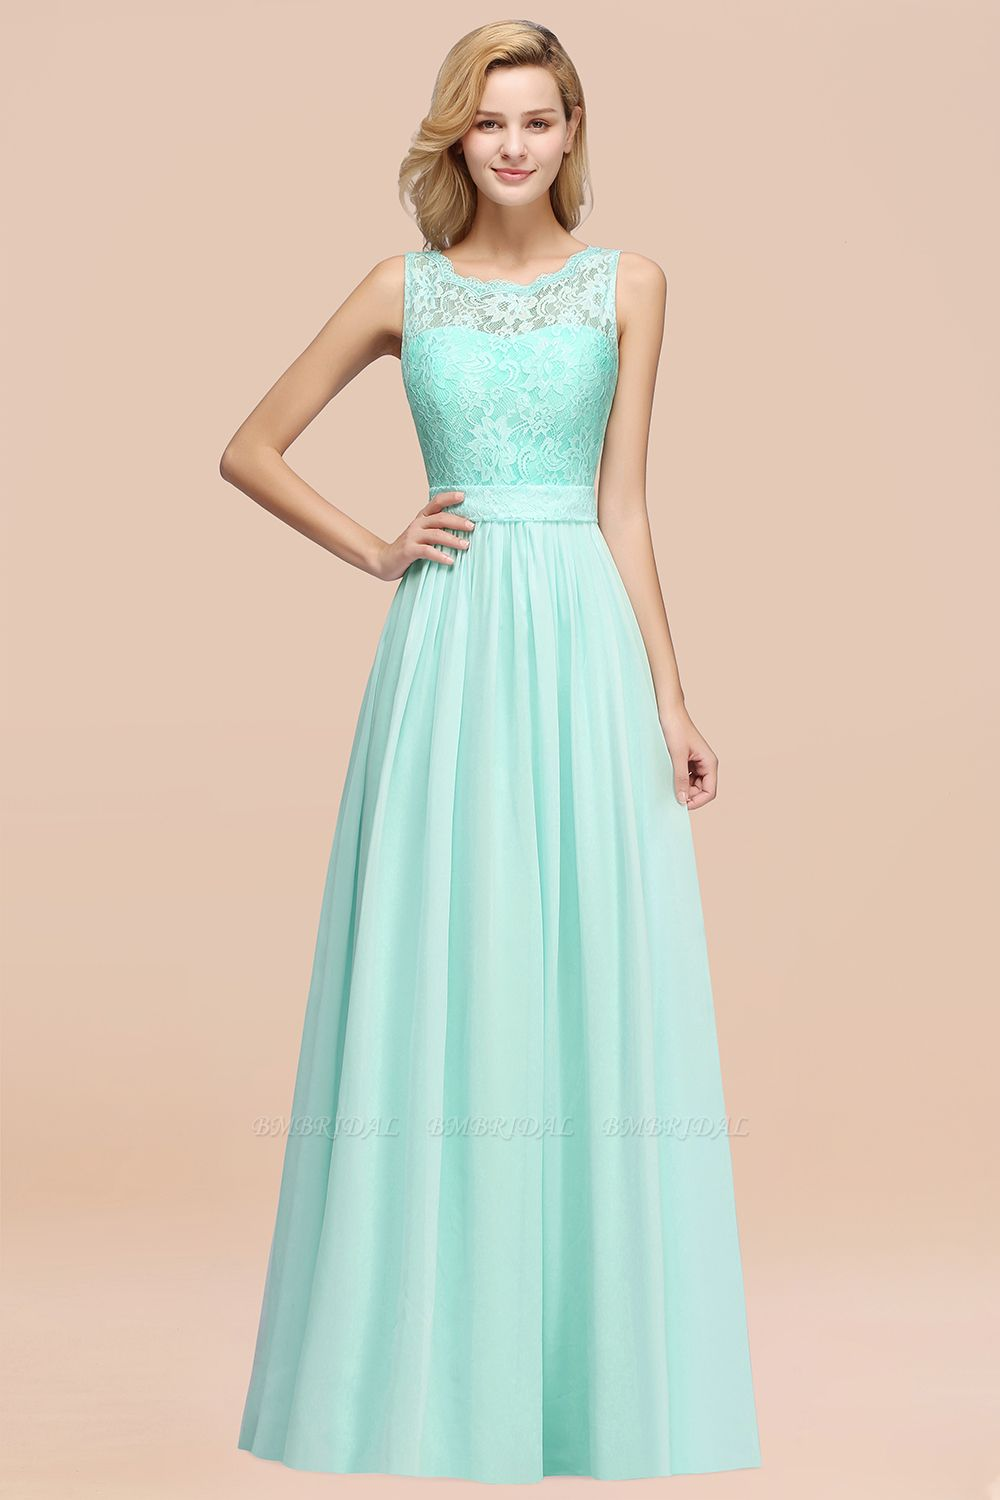 Elegant Chiffon Lace Scalloped Sleeveless Ruffle Bridesmaid Dresses